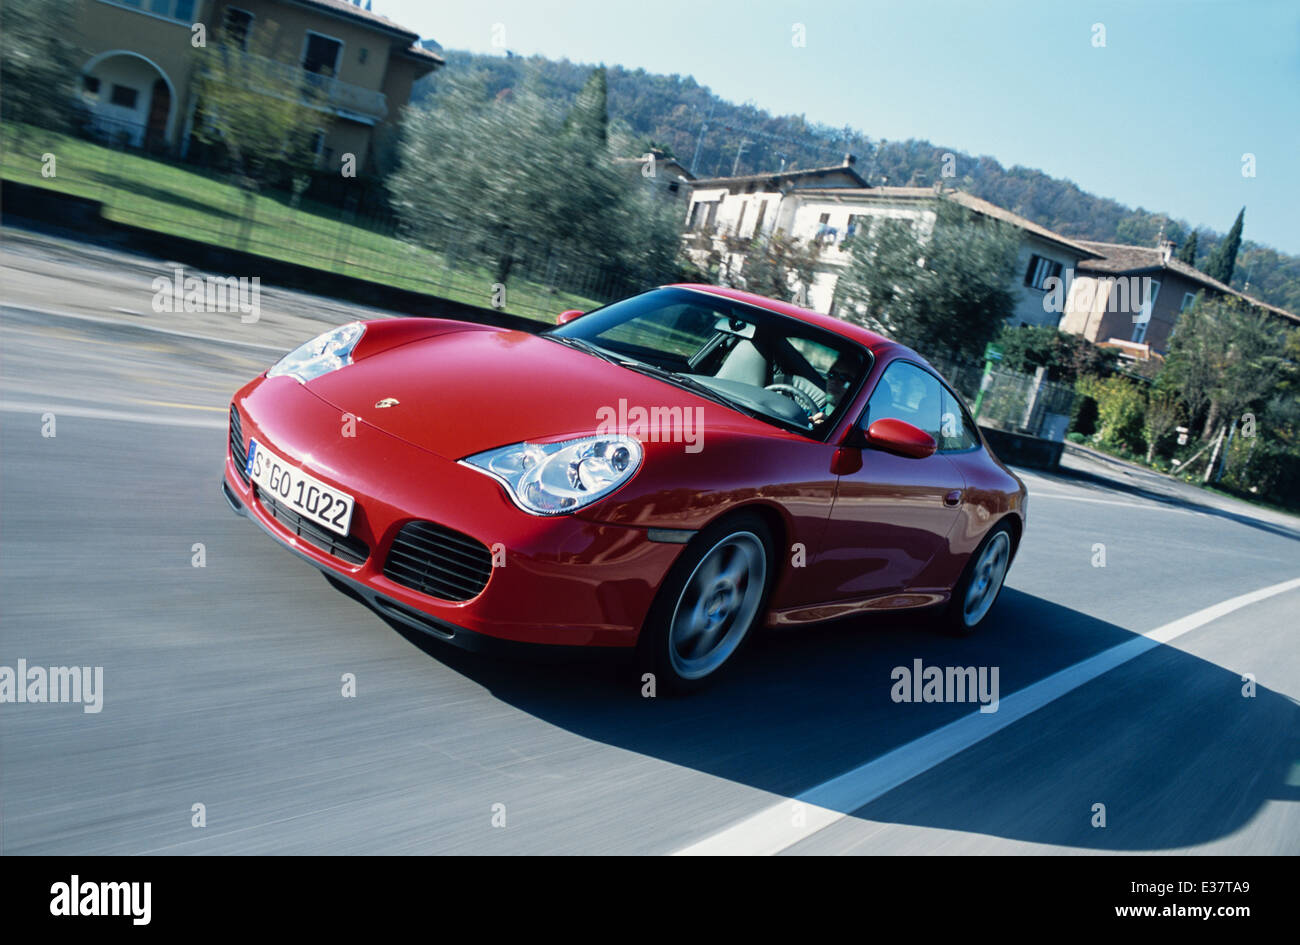 Porsche 911 Carrera 4S - 996 Model - 2001 in red - front three quarter view driving - Stock Image